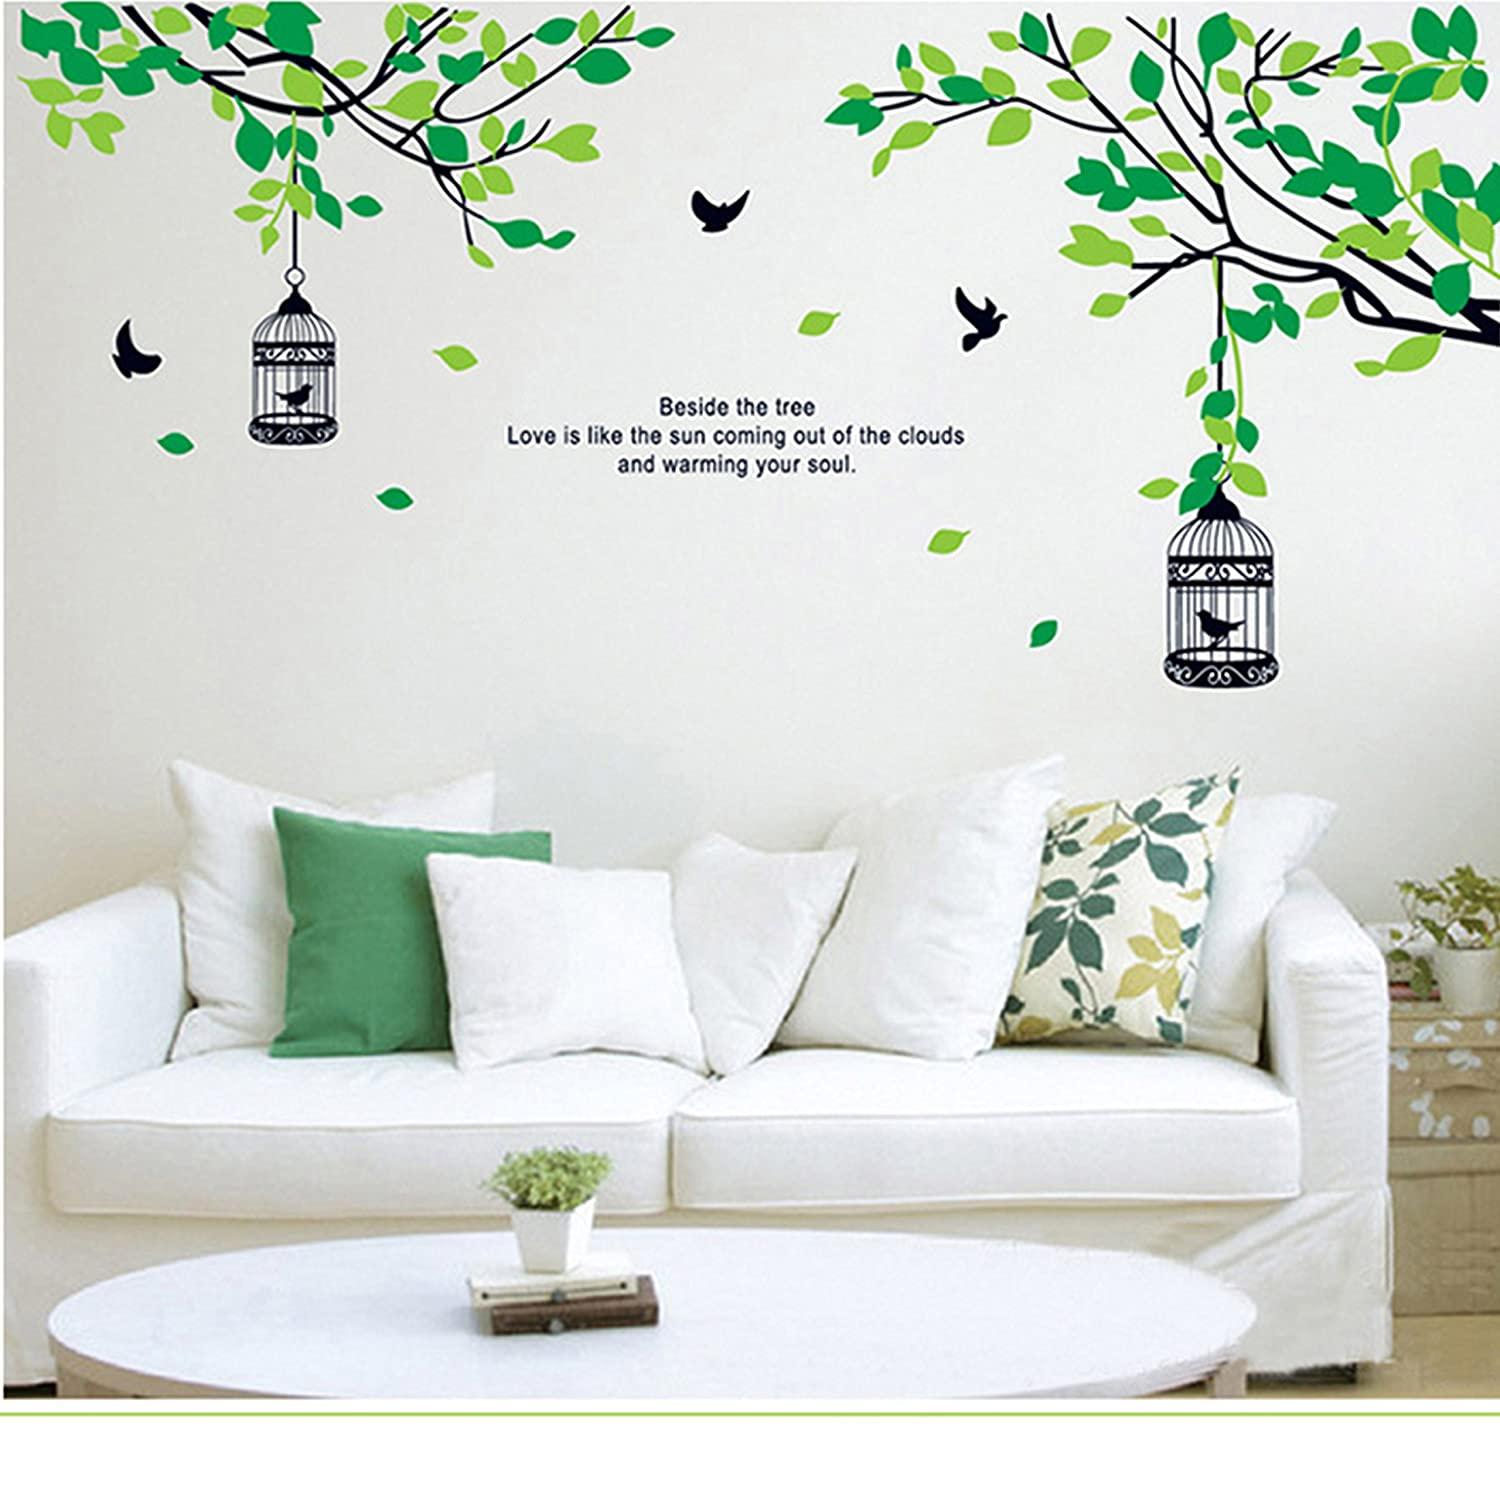 Goldencart nature wall stickers calm green trees birds nest w a heart warming quotation for bedrooms living room w nature theme to glorify the